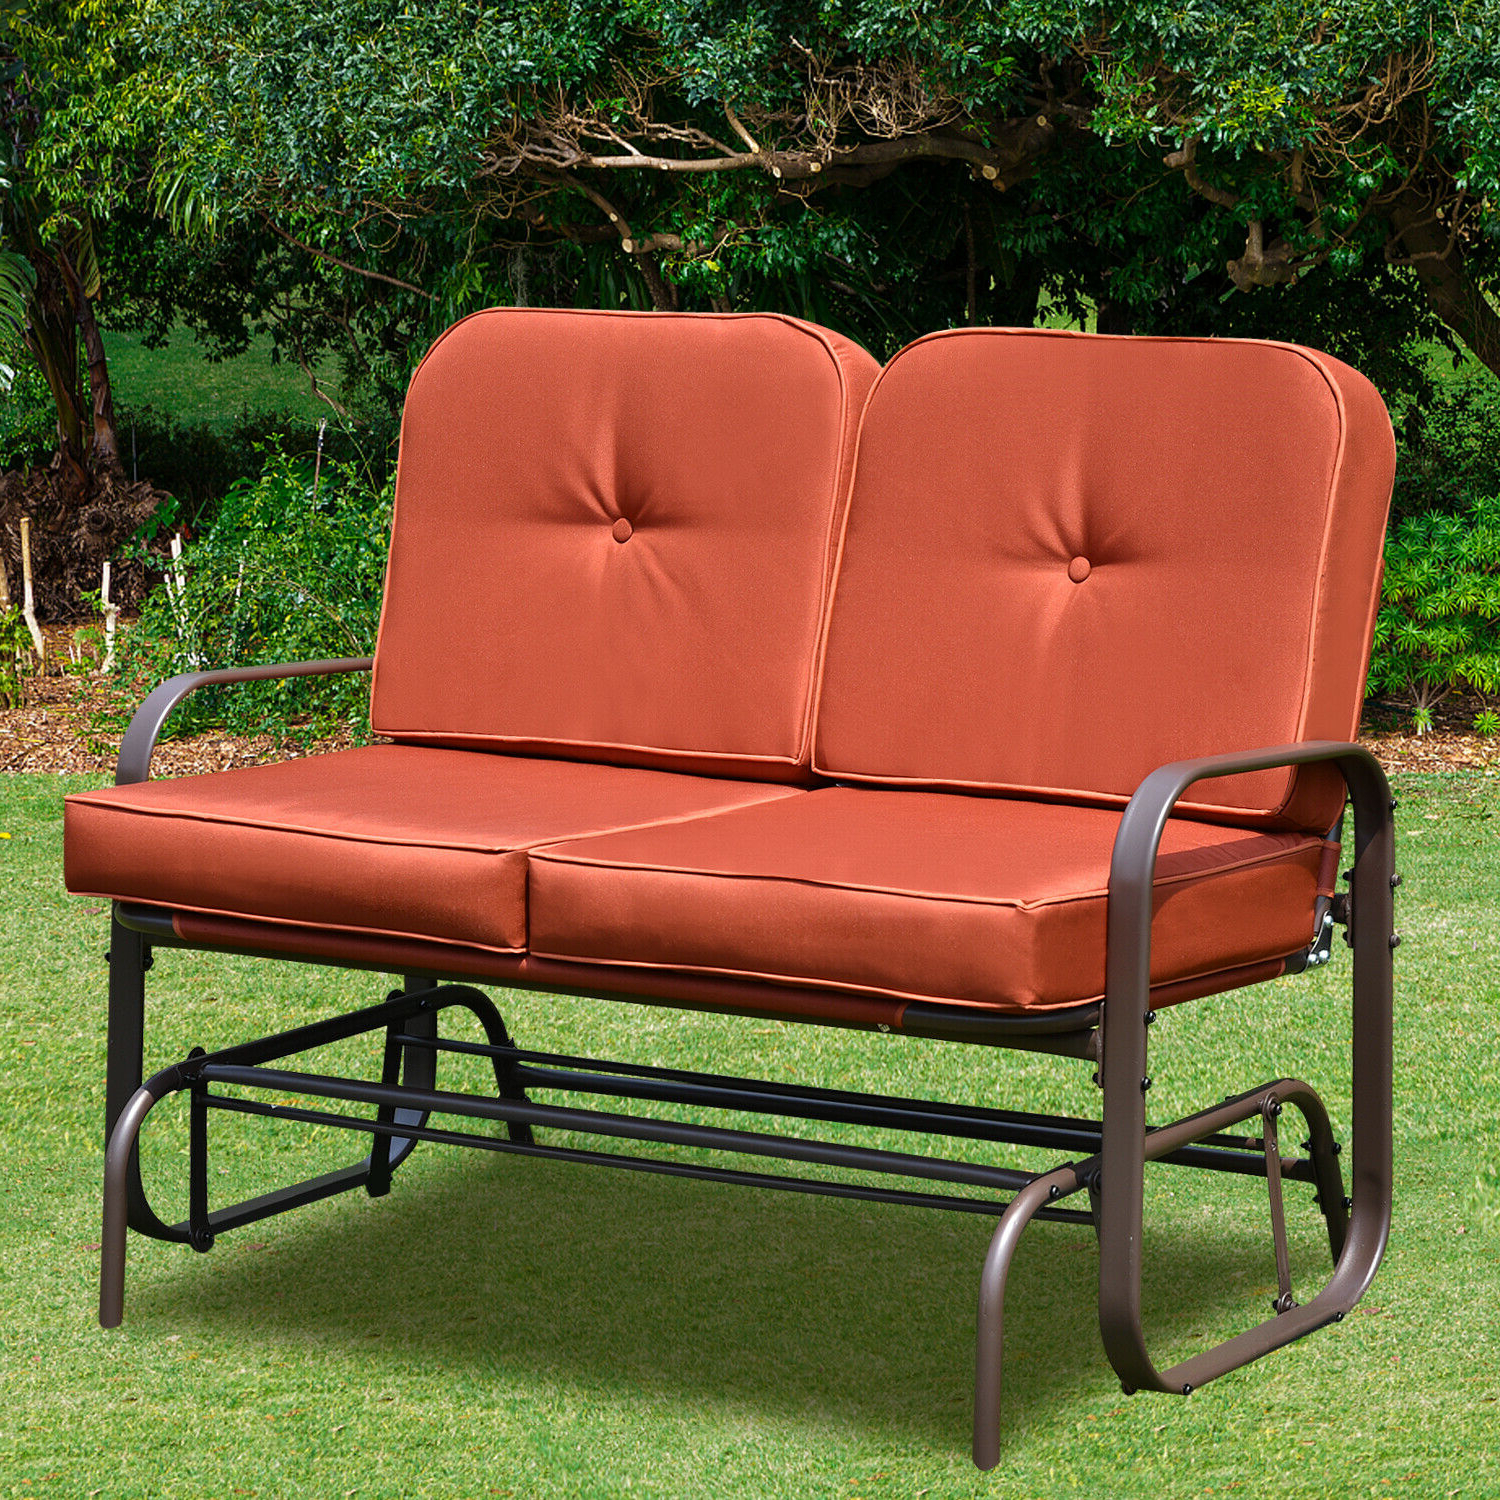 Well Known Outdoor Loveseat Gliders With Cushion Regarding Patio Glider Bench Chair 2 Person Rocker Loveseat Outdoor (View 6 of 25)